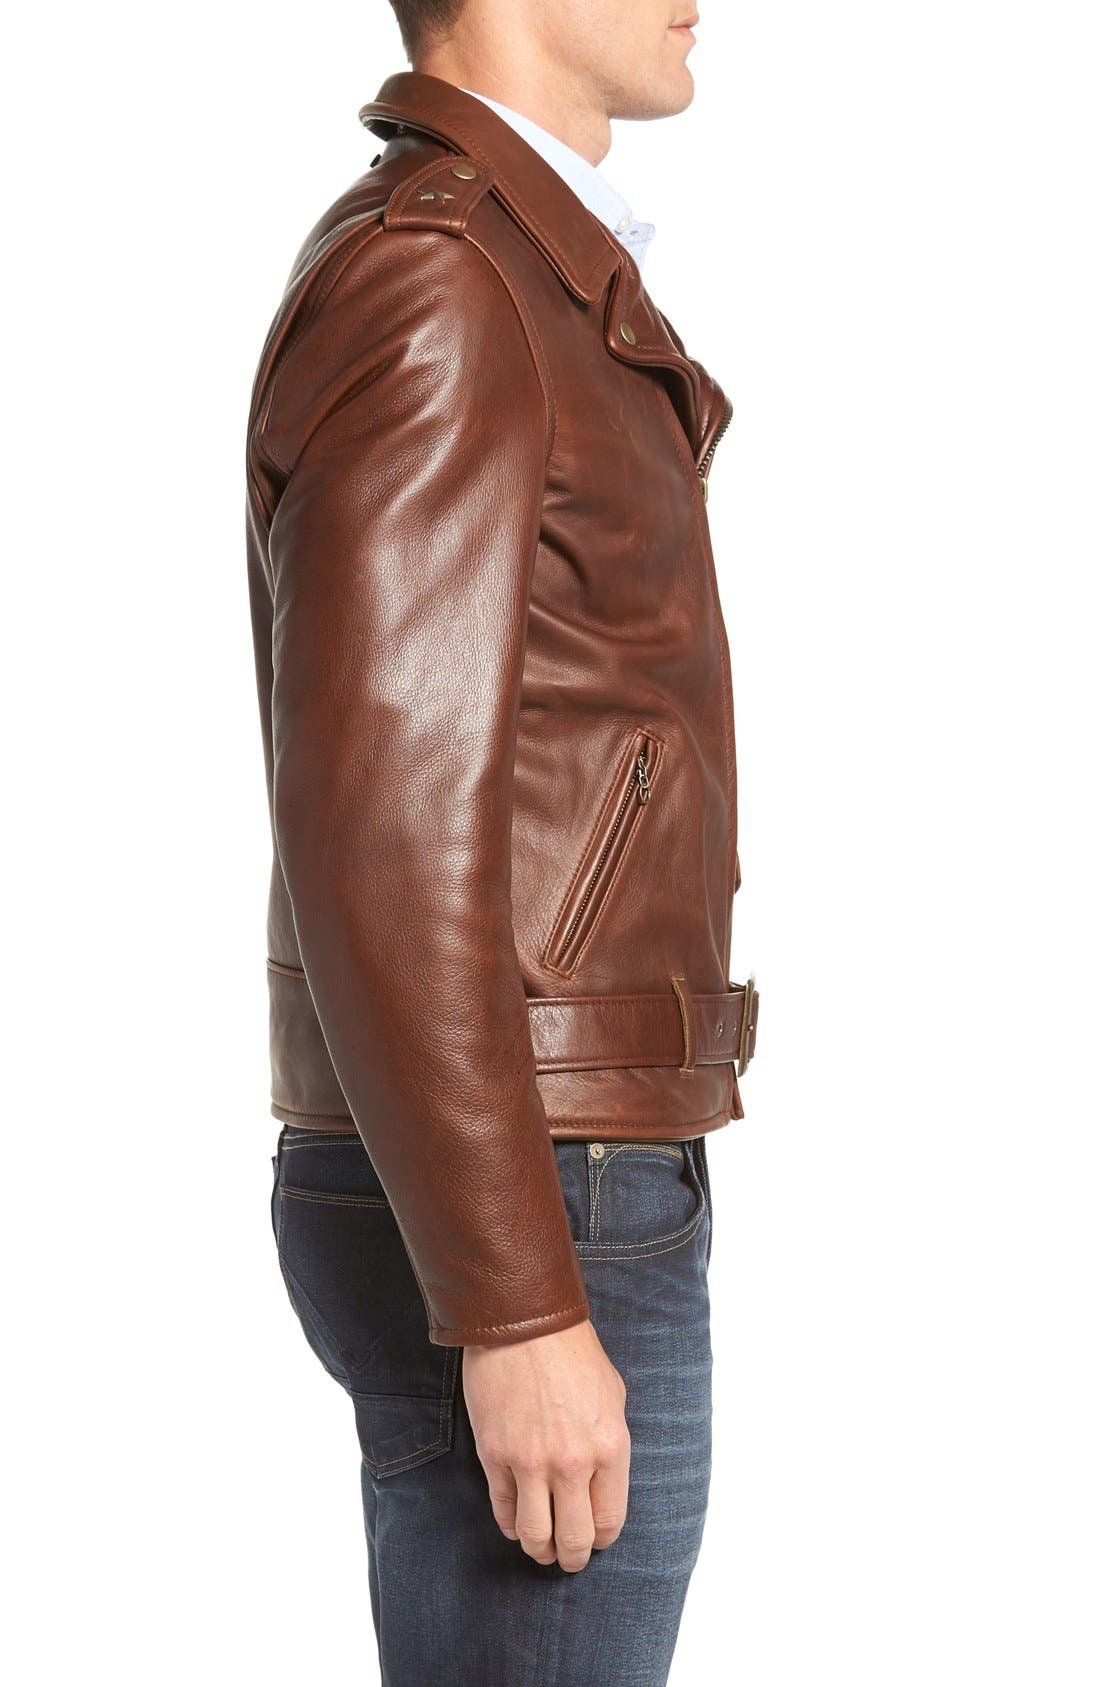 '50s Oil Tanned Cowhide Leather Moto Jacket,                             Alternate thumbnail 8, color,                             BROWN